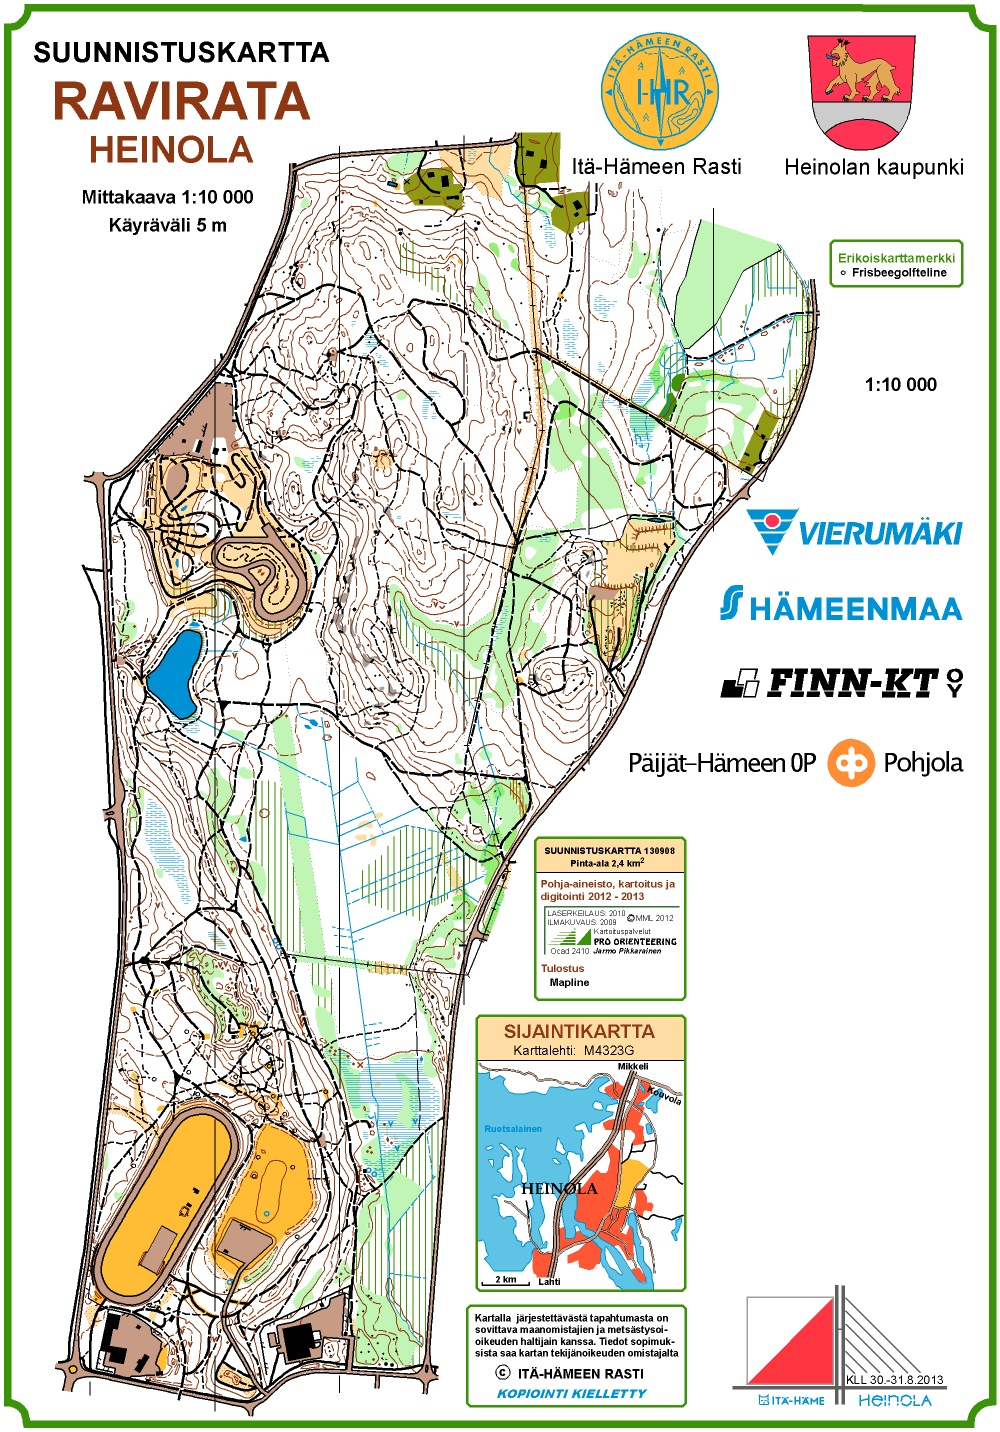 Ykuppi Heinola Ravirata September 4th 2013 Orienteering Map